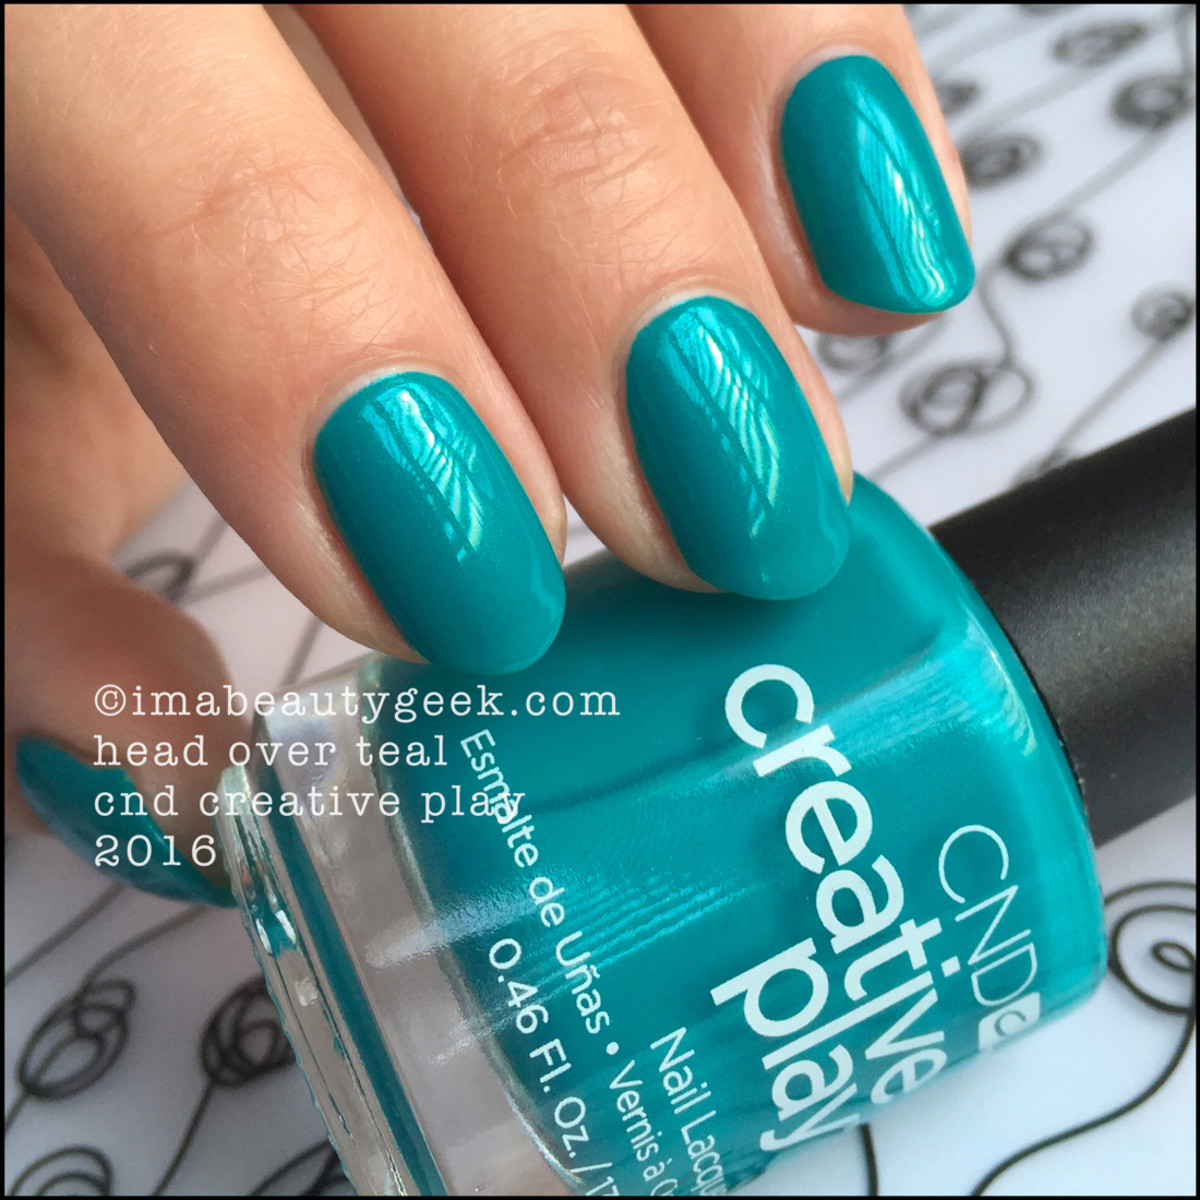 CND Creative Play Head Over Teal_CND Creative Play Nail Polish Swatches 2016